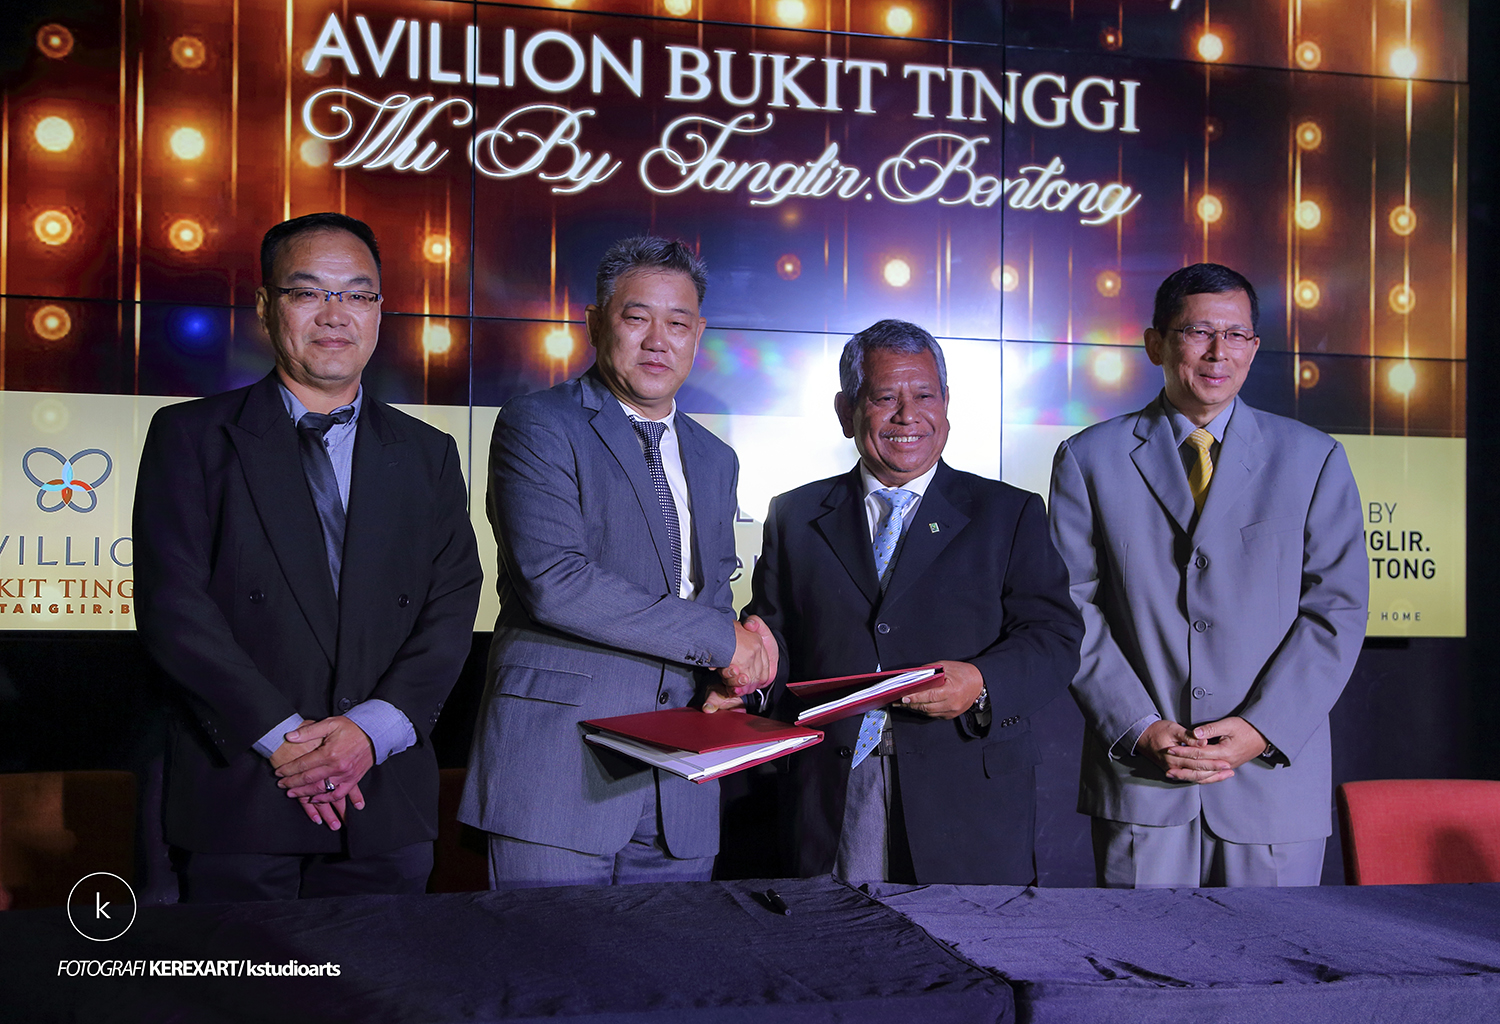 AVILLION RESORT BUKIT TINGGI